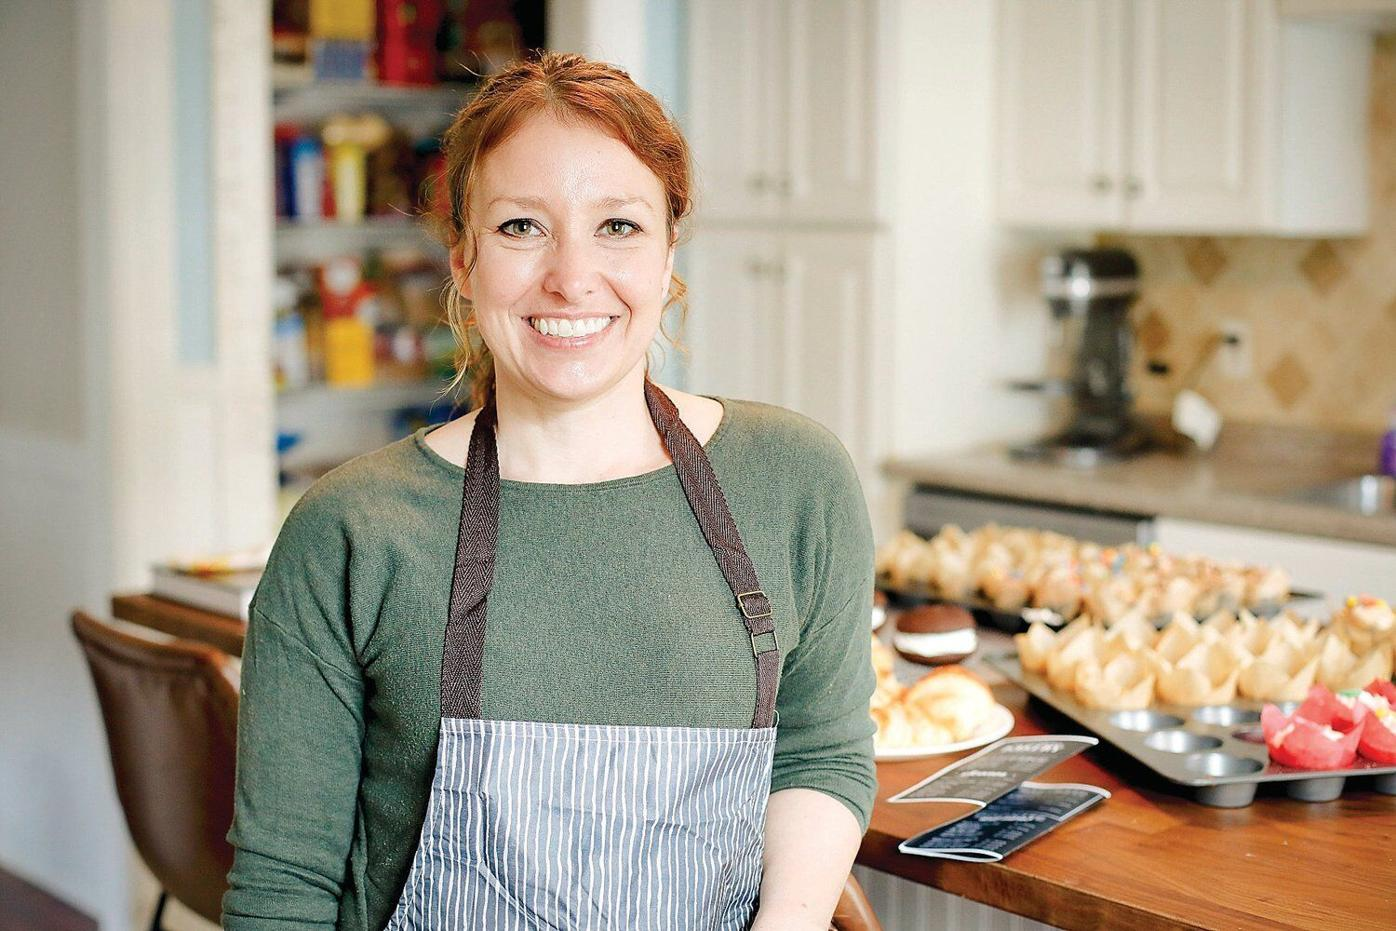 The Shire Cottage Bakery: Artisan breads, cupcakes made-to-order in baker's home kitchen (copy)